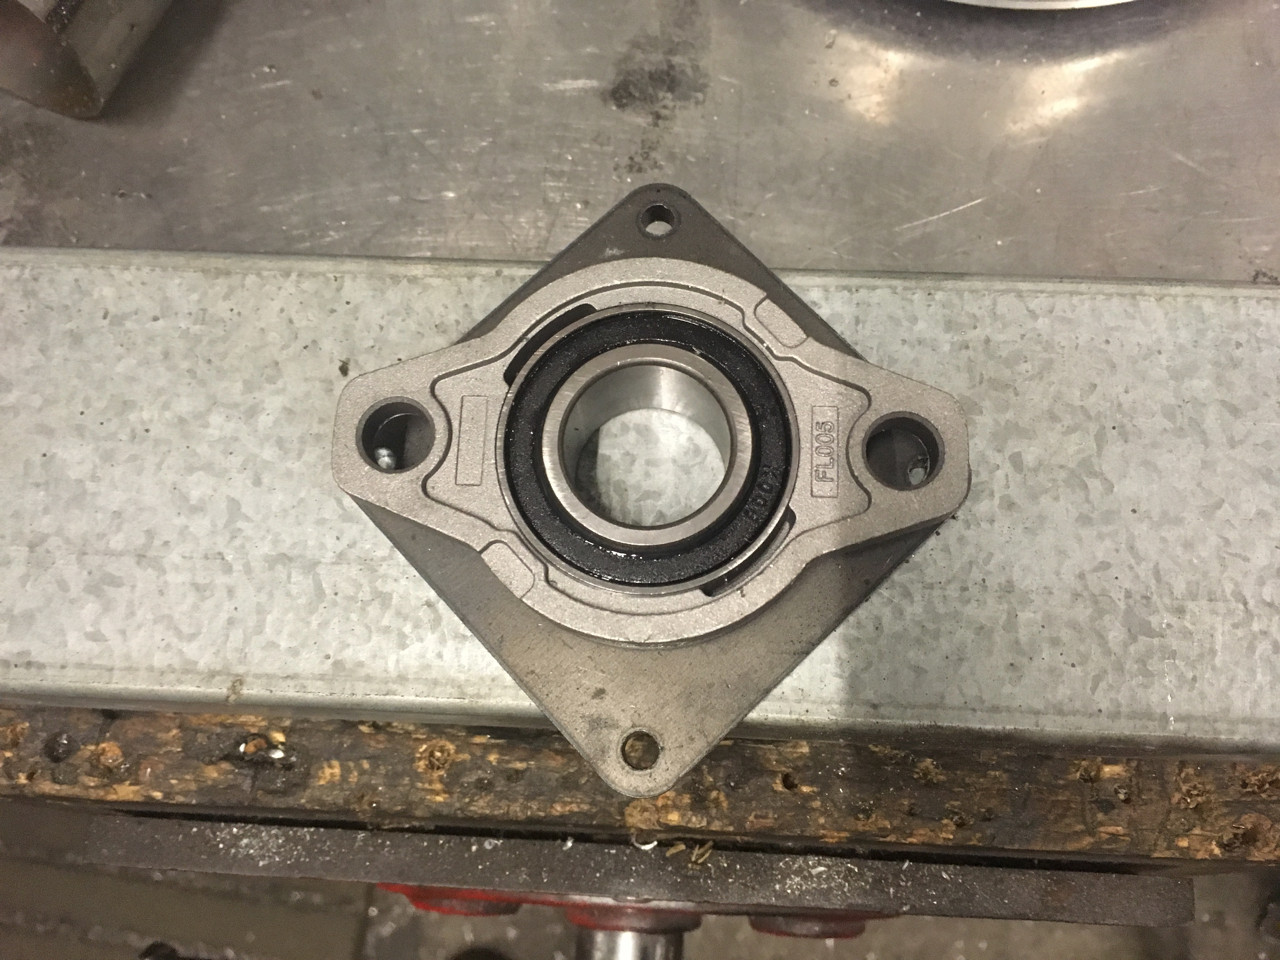 Bearing in position - The mounting plate will be welded and trimmed to it the chassis rails. The plate provides the support for the bearing, otherwise all of the weight is on the two mounting bolts and a tiny bit of alloy on the bearing ears